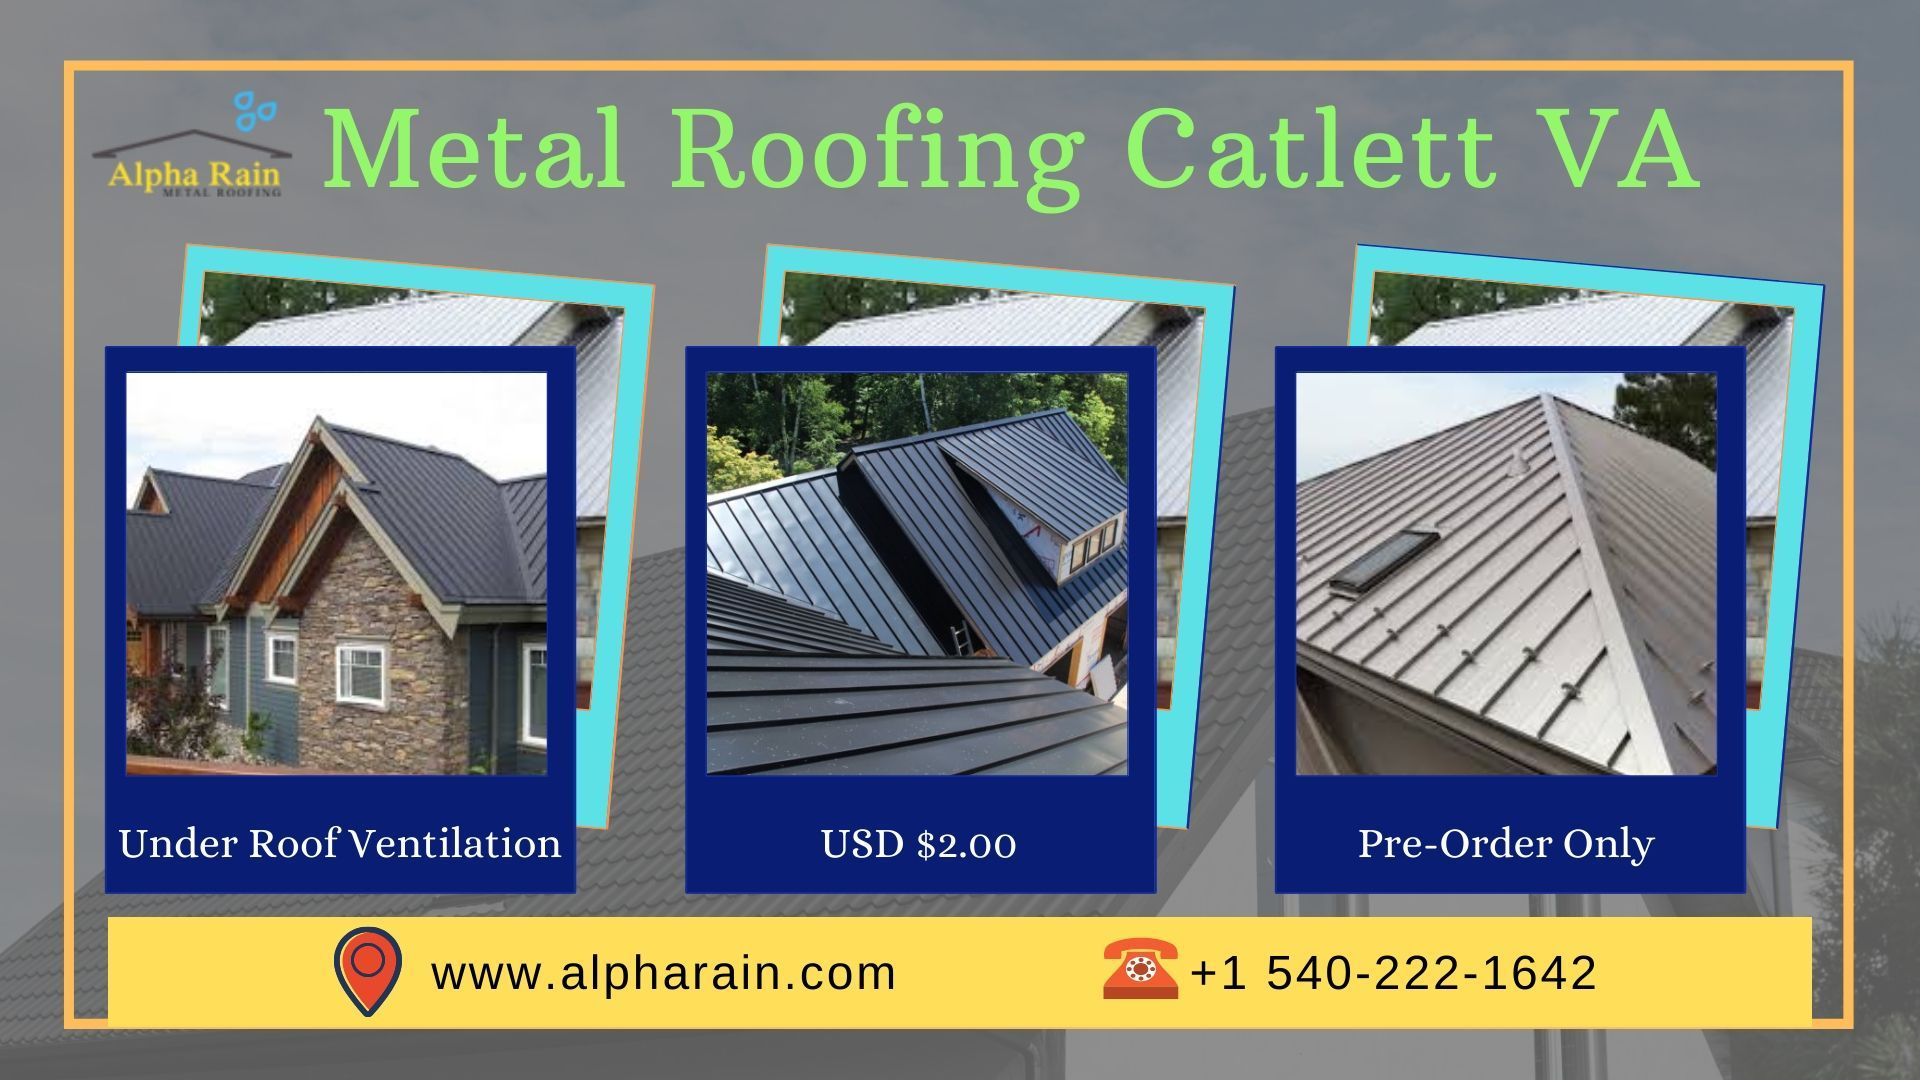 Under Roof Ventilation In 2020 Metal Roof Roofing Cool Roof